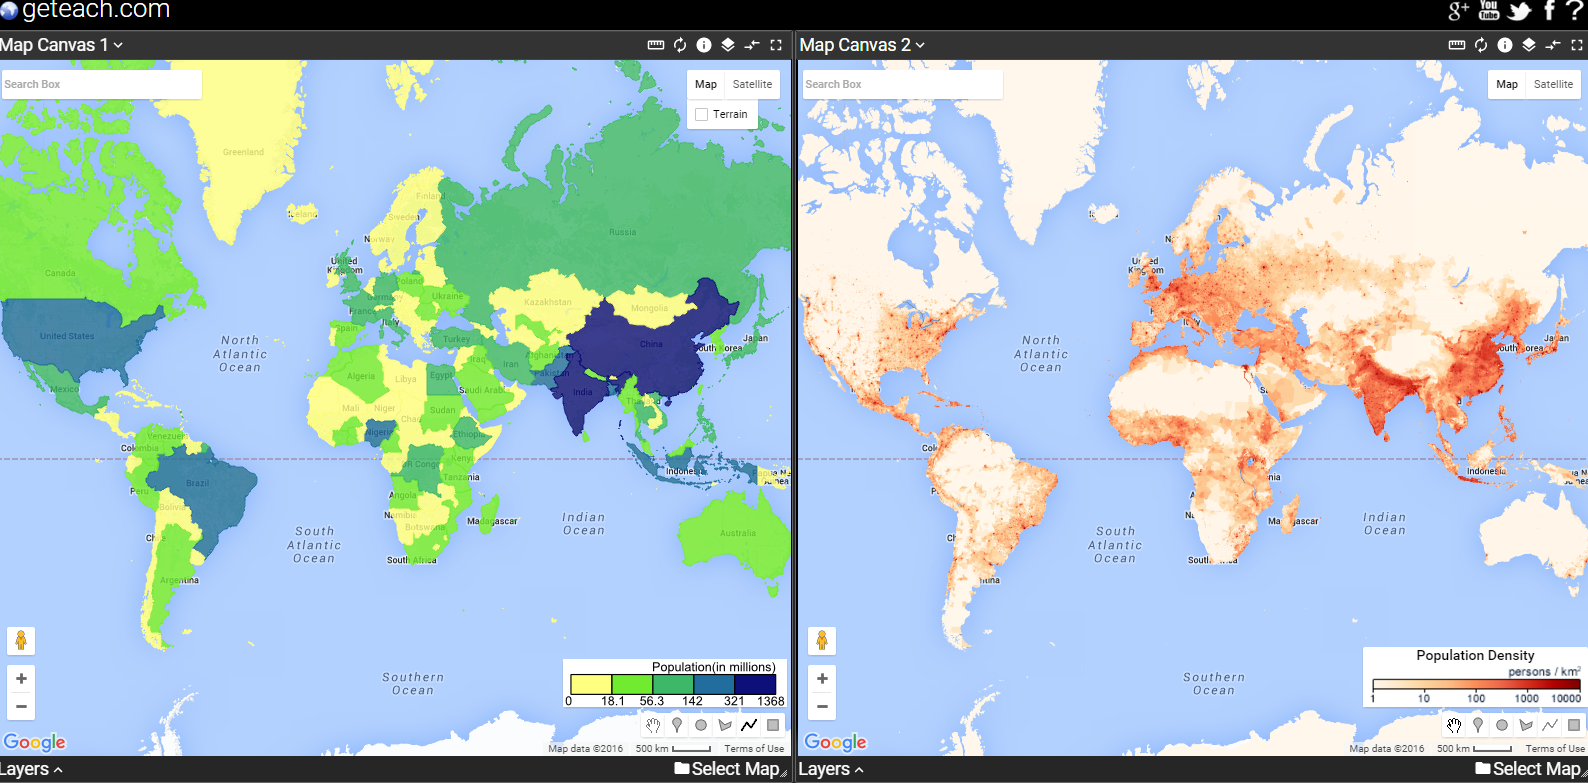 Free Technology for Teachers: Students Can Compare Maps Side-by-Side on